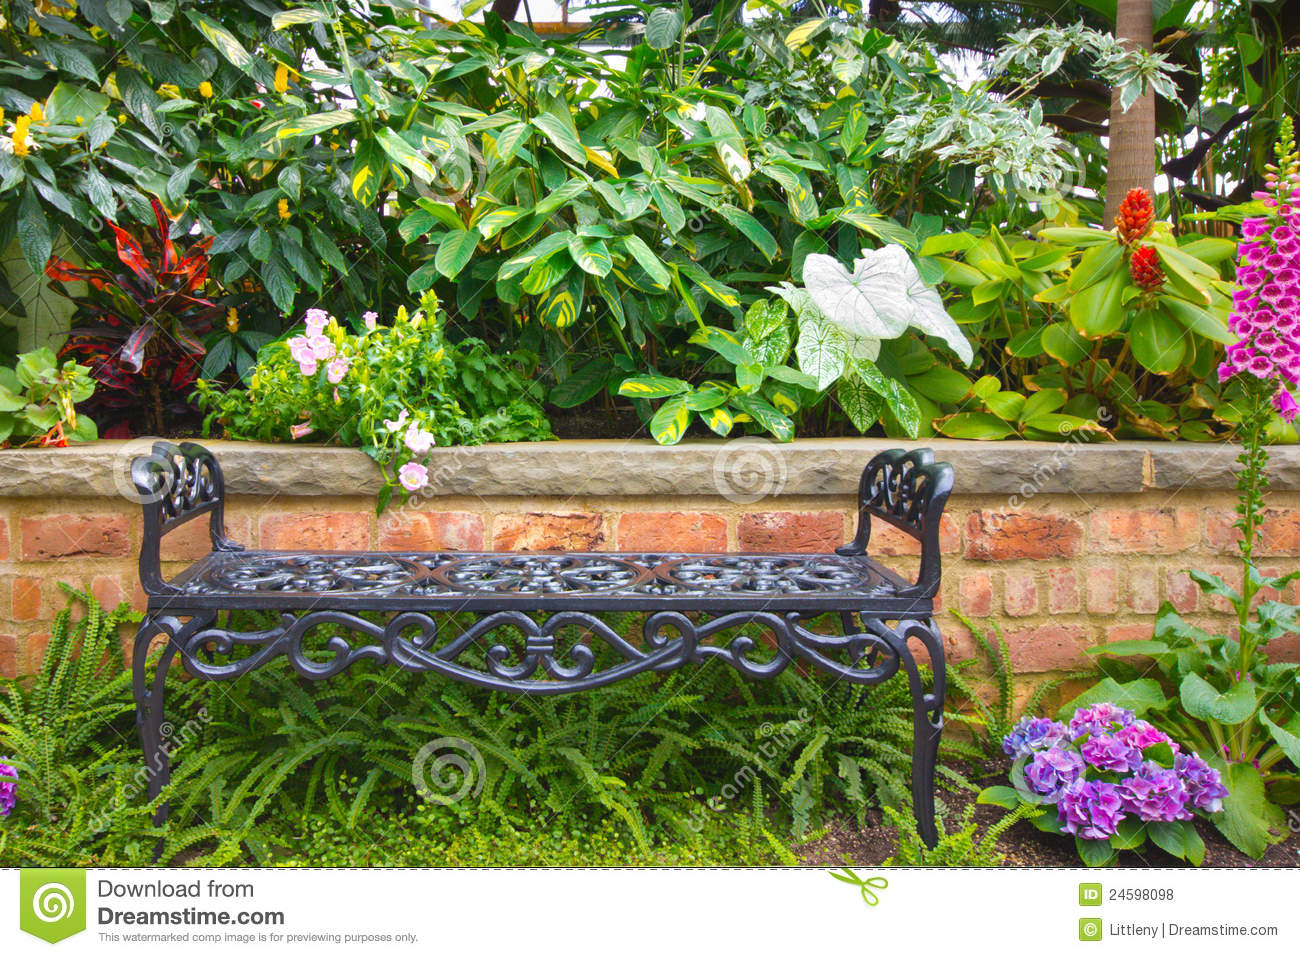 Garden Bench Royalty Free Stock Photos Image 24598098